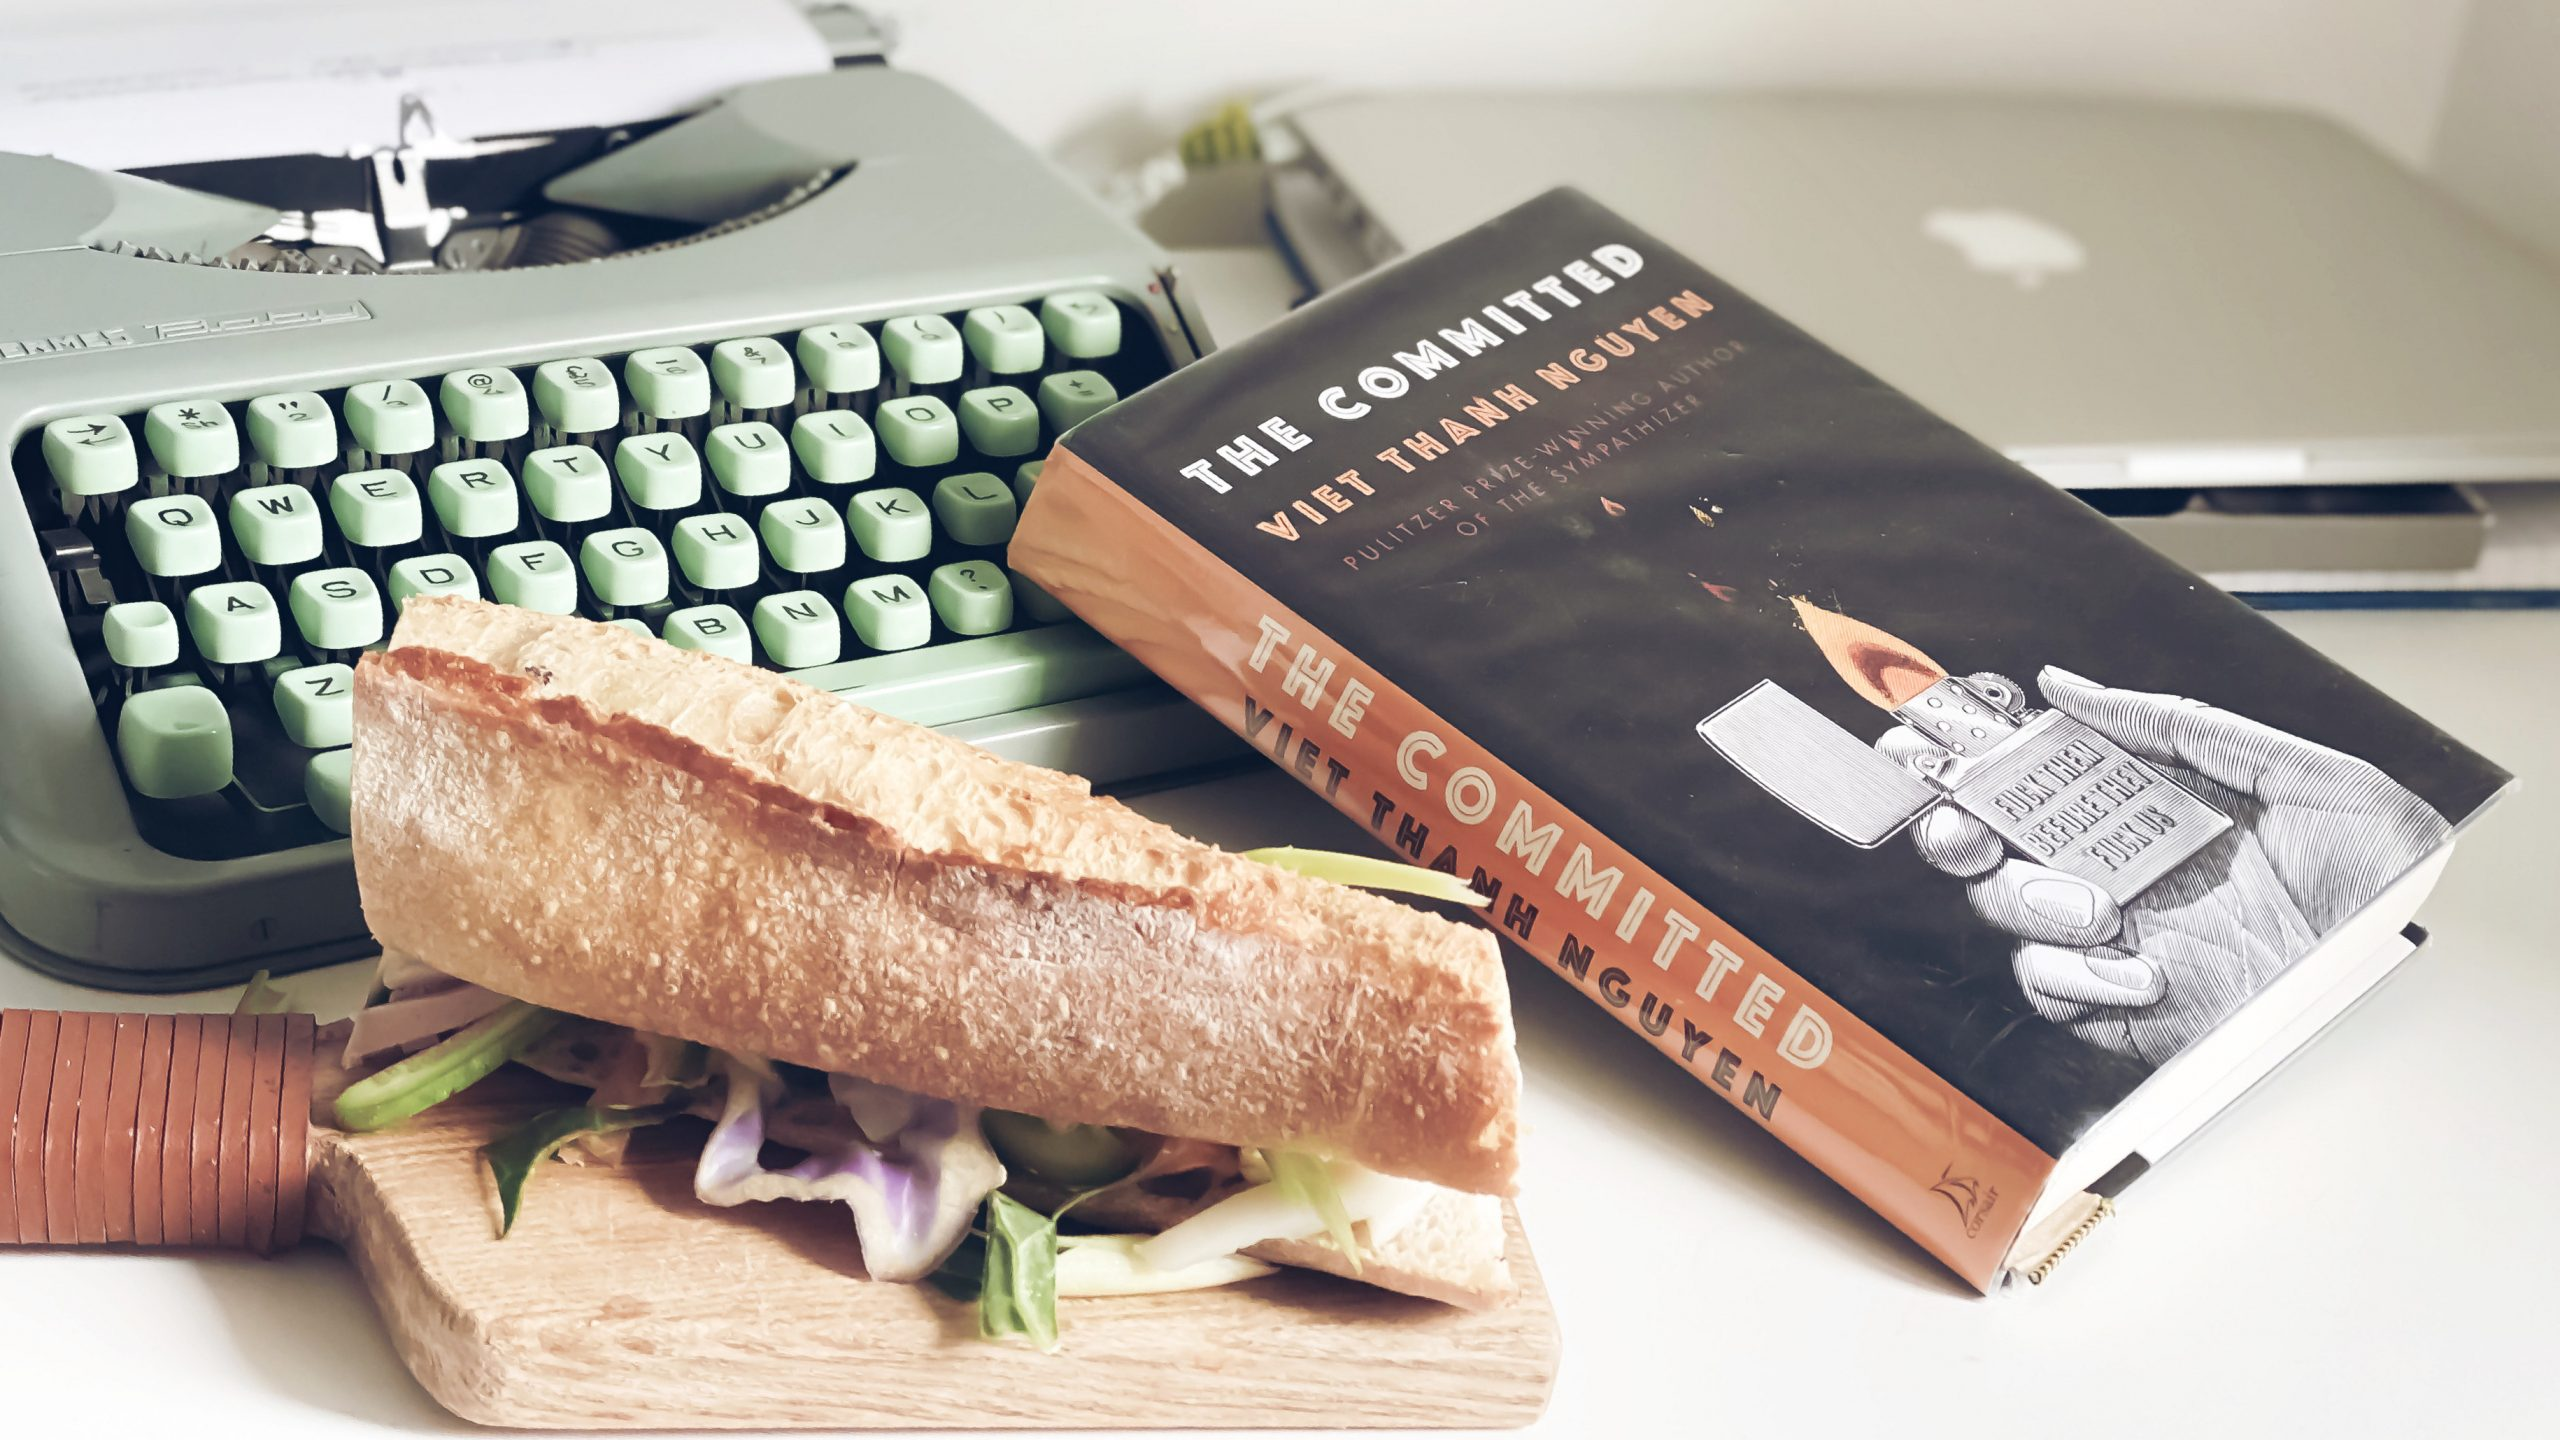 Dinner with a Book: The Committed